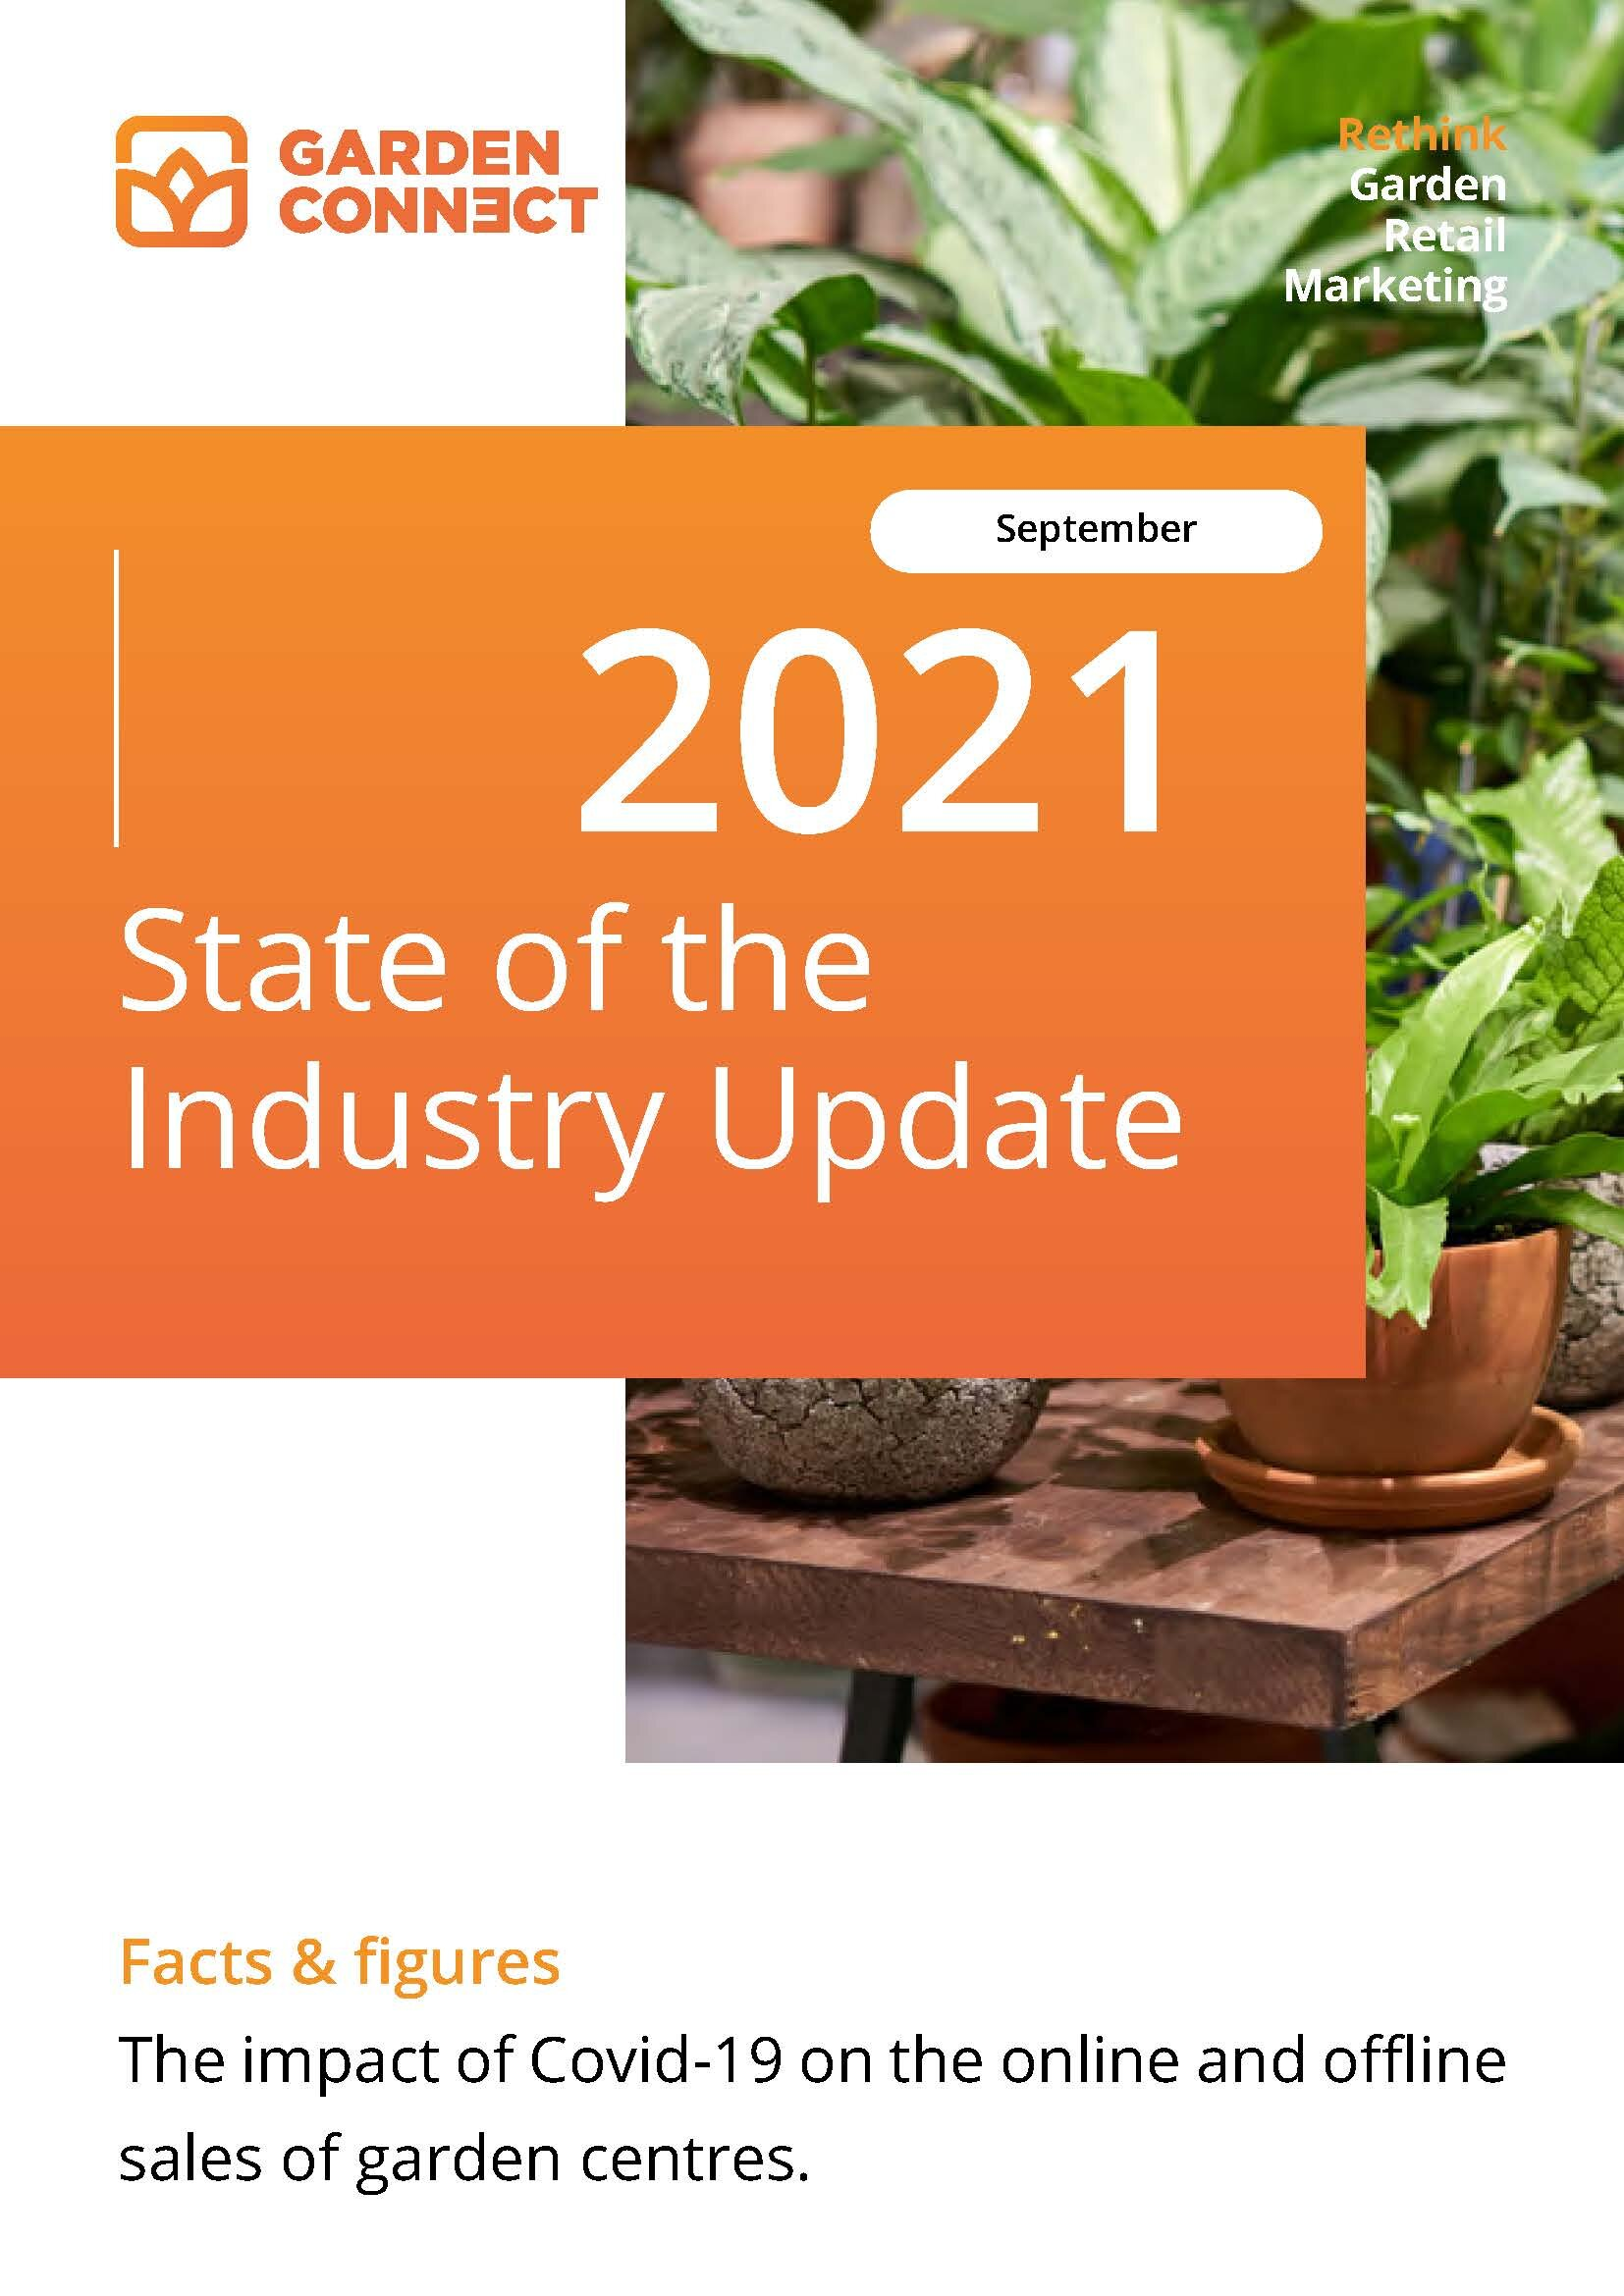 State of the Industry Update (September 2021)